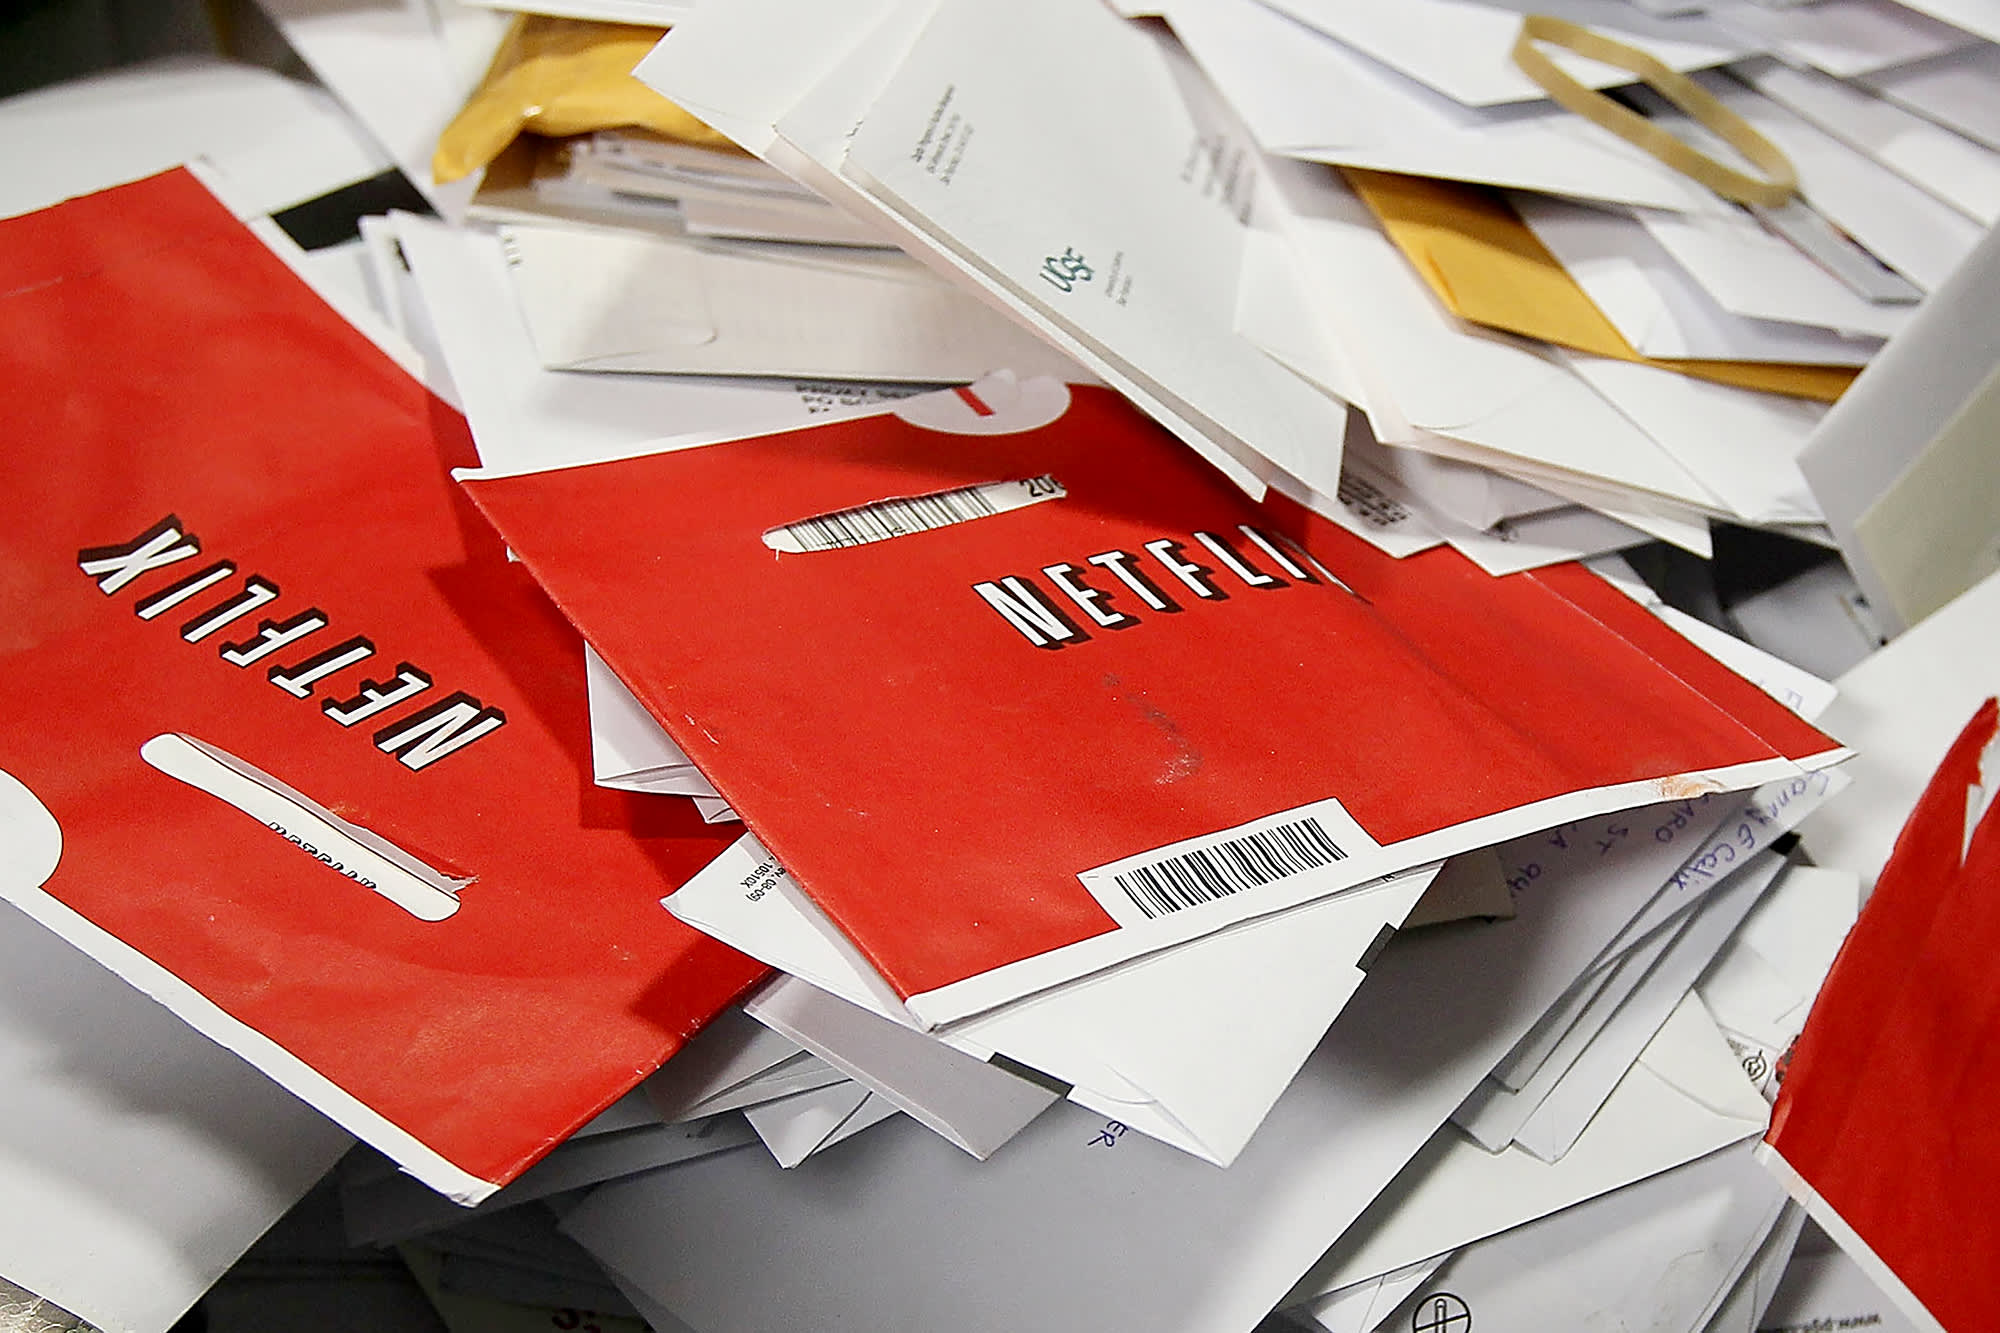 Netflix DVD business still alive, what is it like to work there?